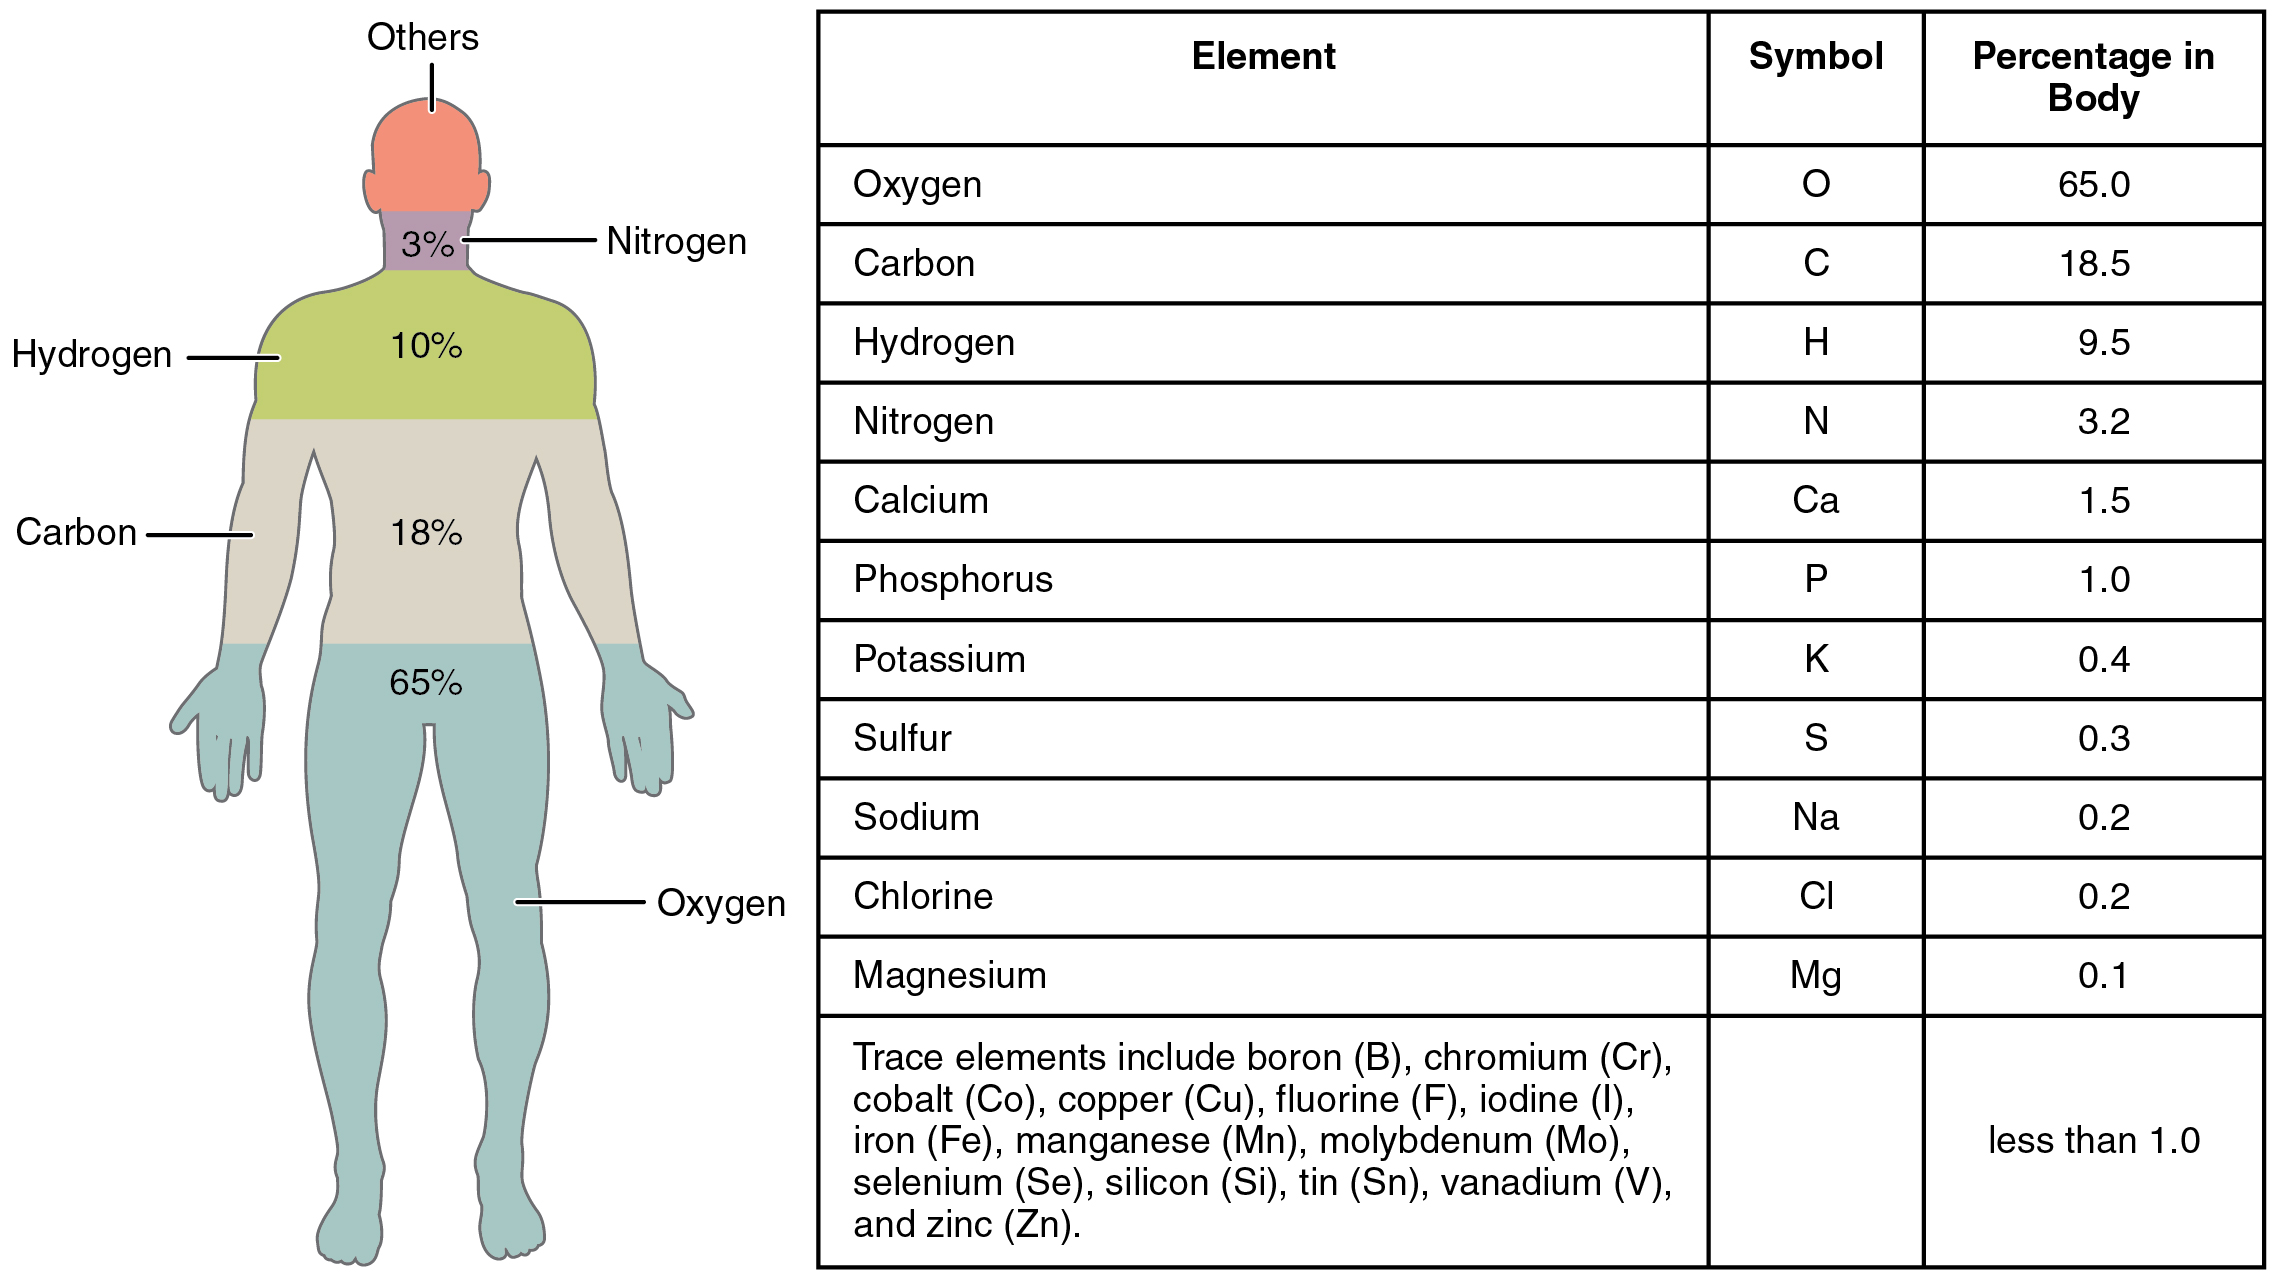 21 elements and atoms the building blocks of matter anatomy this figure shows a human body with the percentage of the main elements in the body gamestrikefo Choice Image